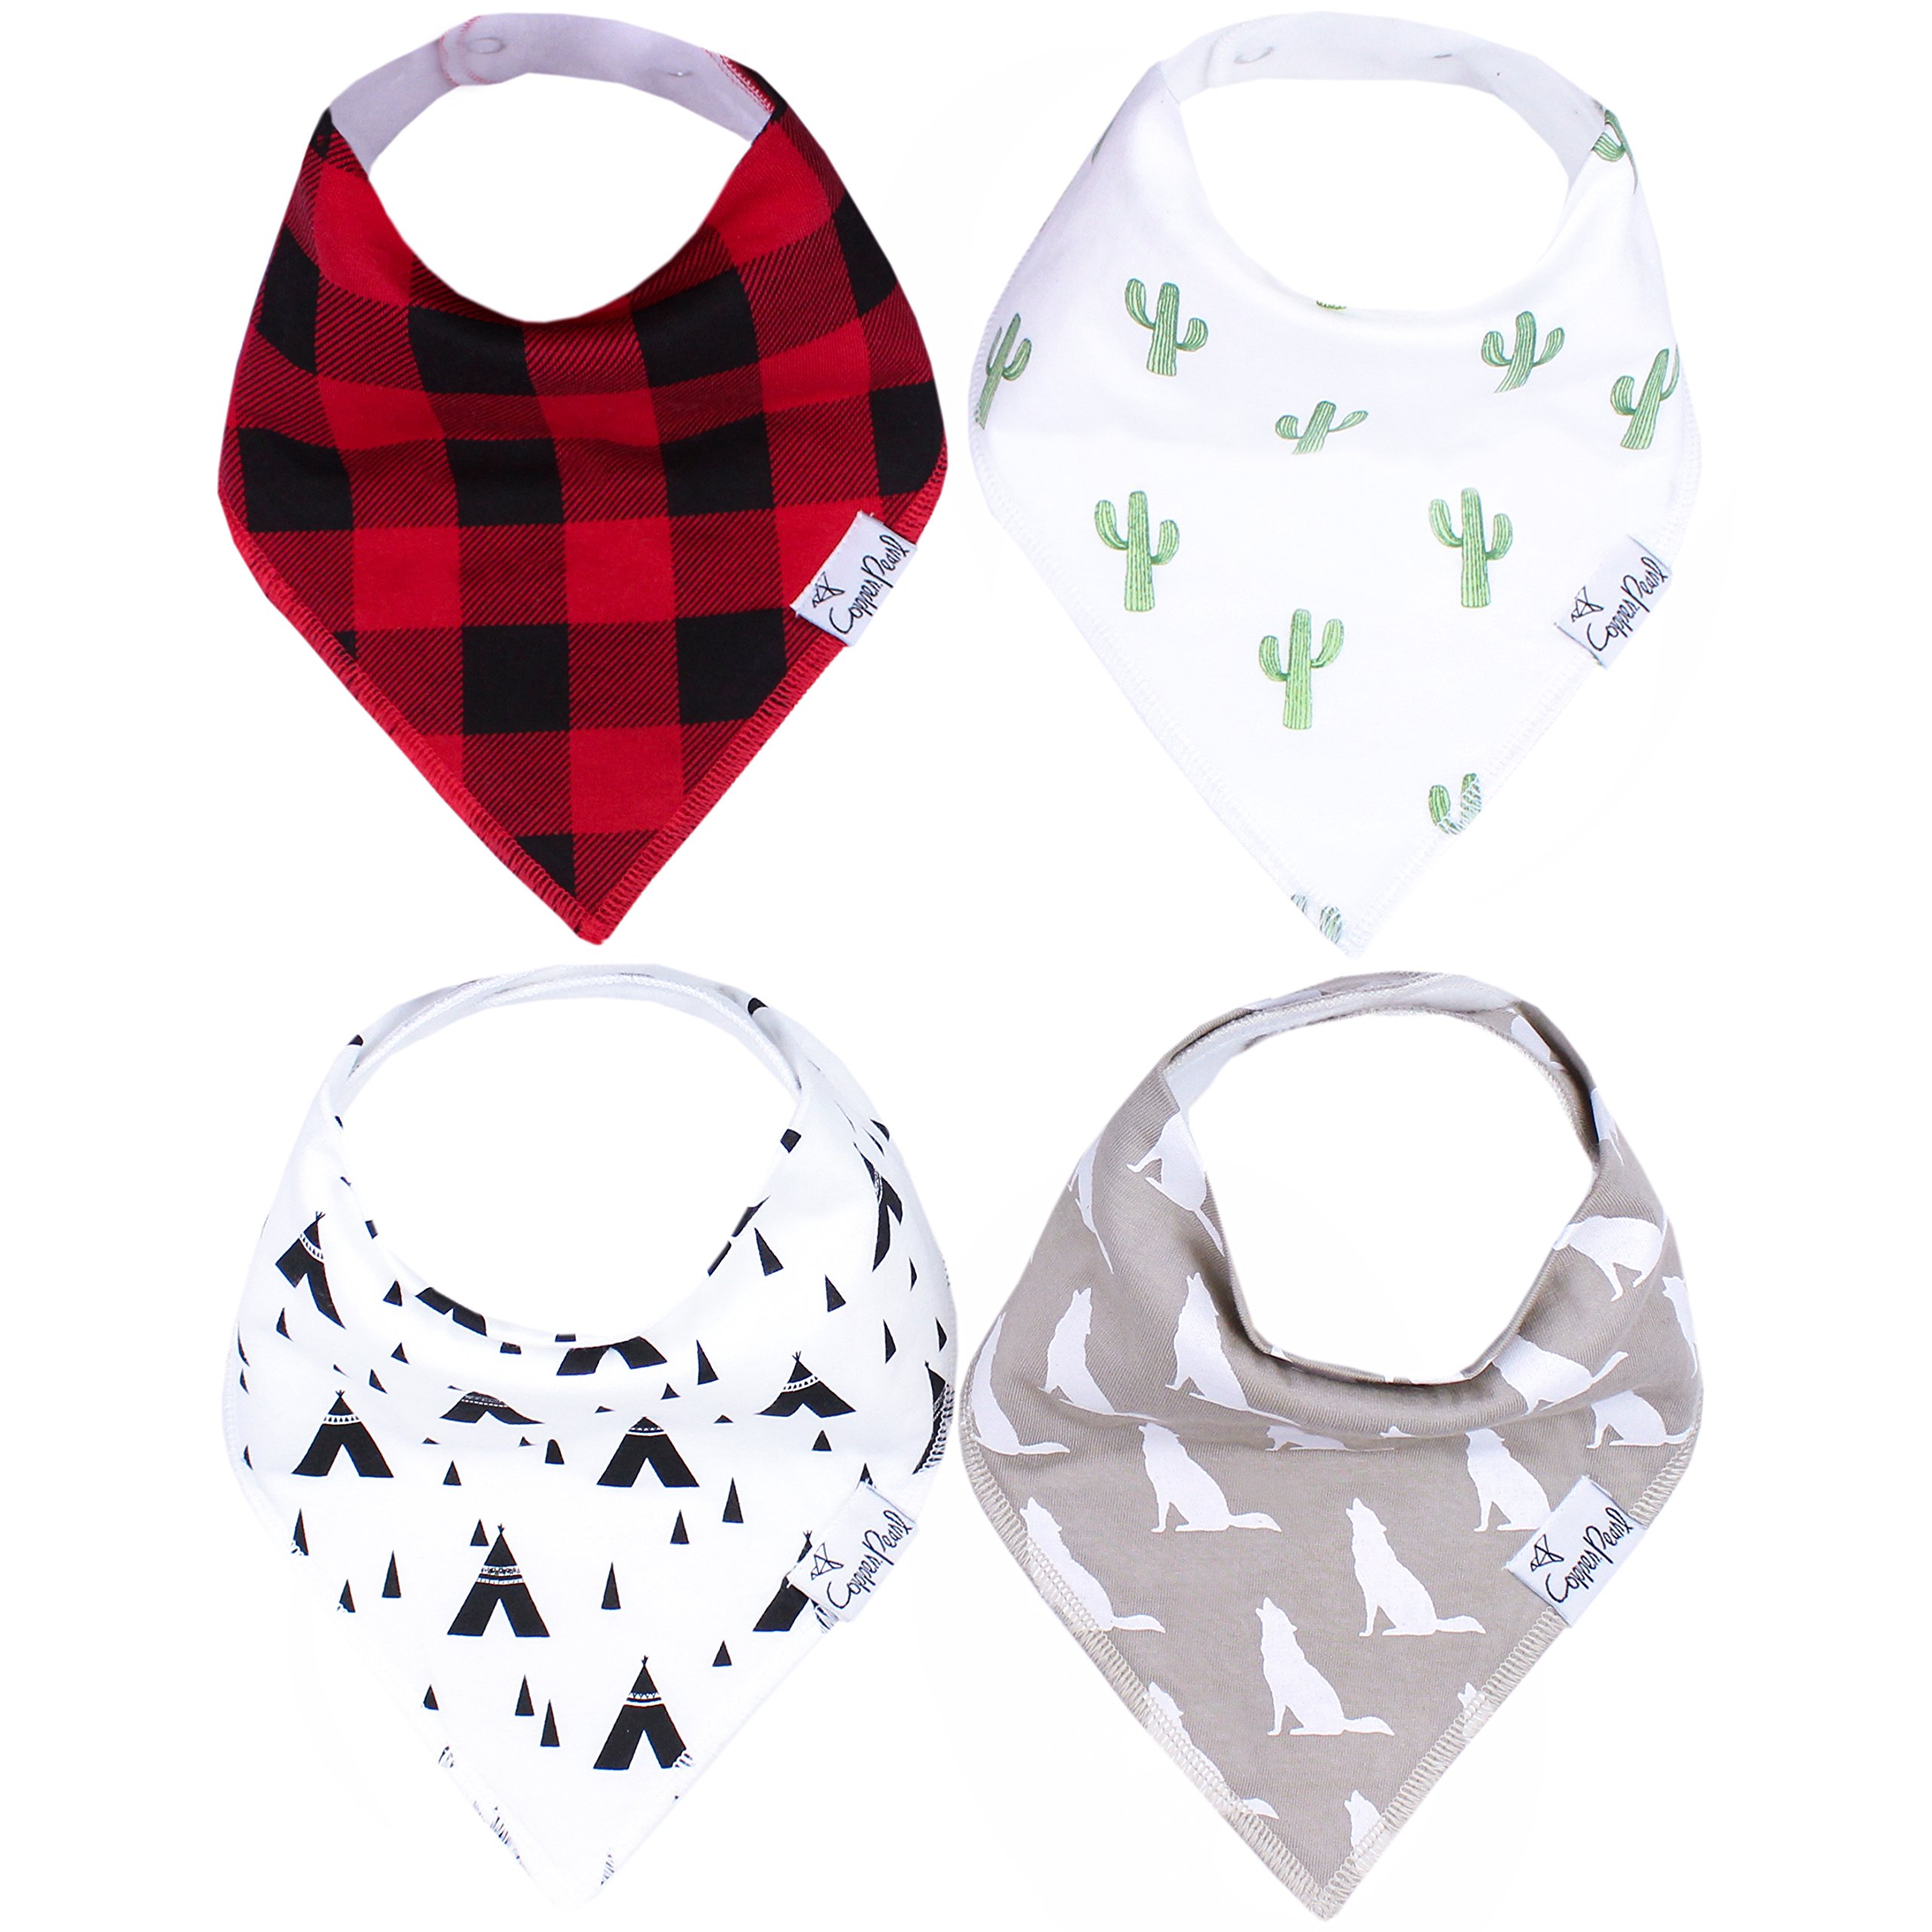 Baby Bandana Drool Bibs for Drooling and Teething 4 Pack Gift Set For Boys ''Phoenix Set'' by Copper Pearl